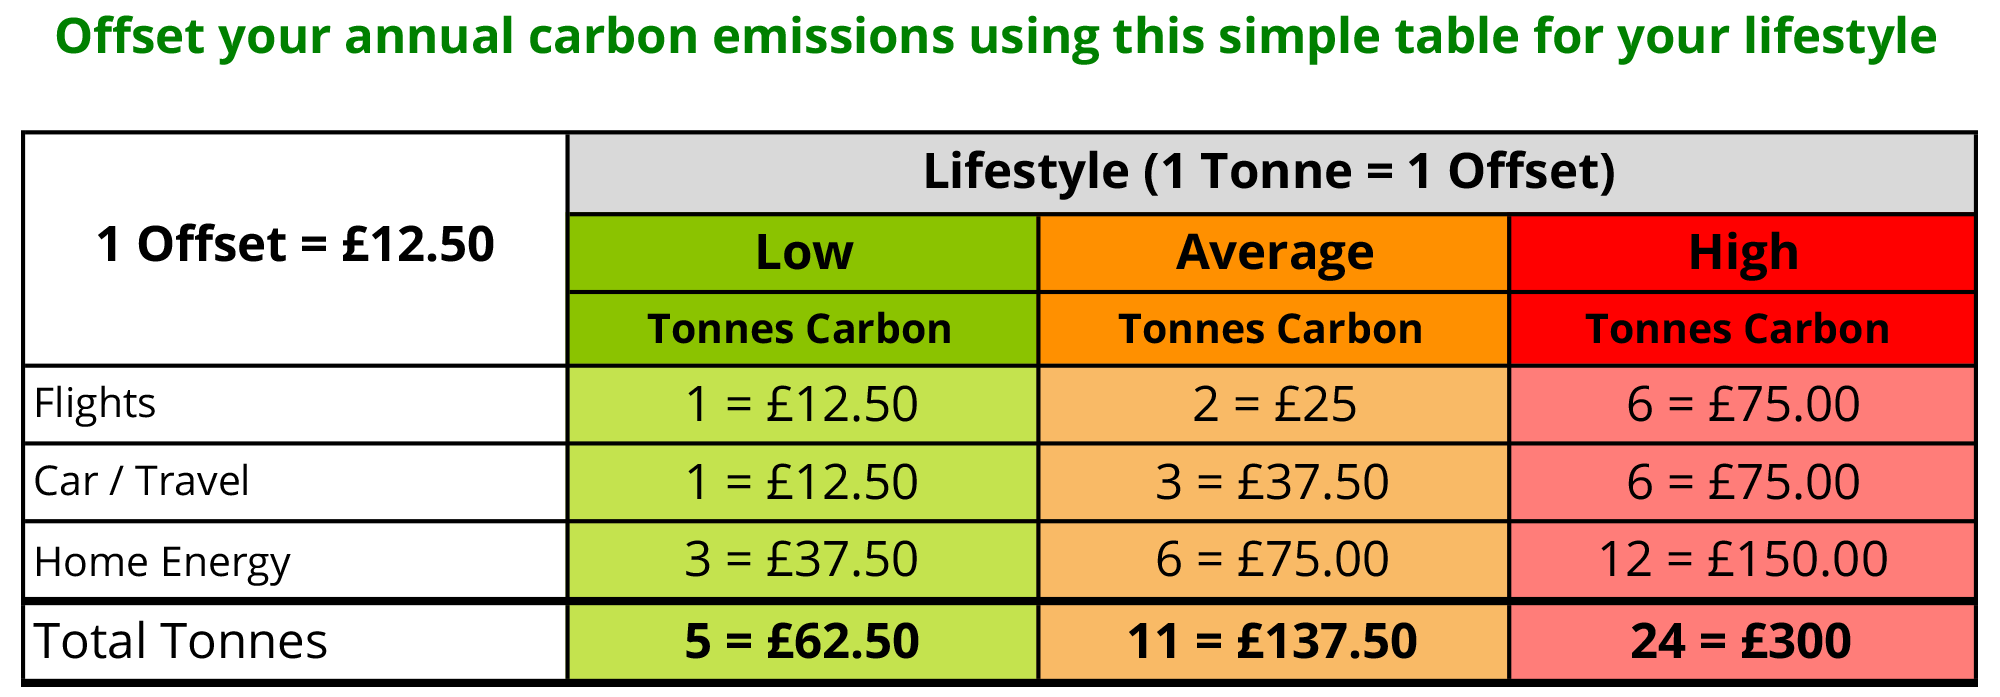 Offset your carbon footprint lifestyle table